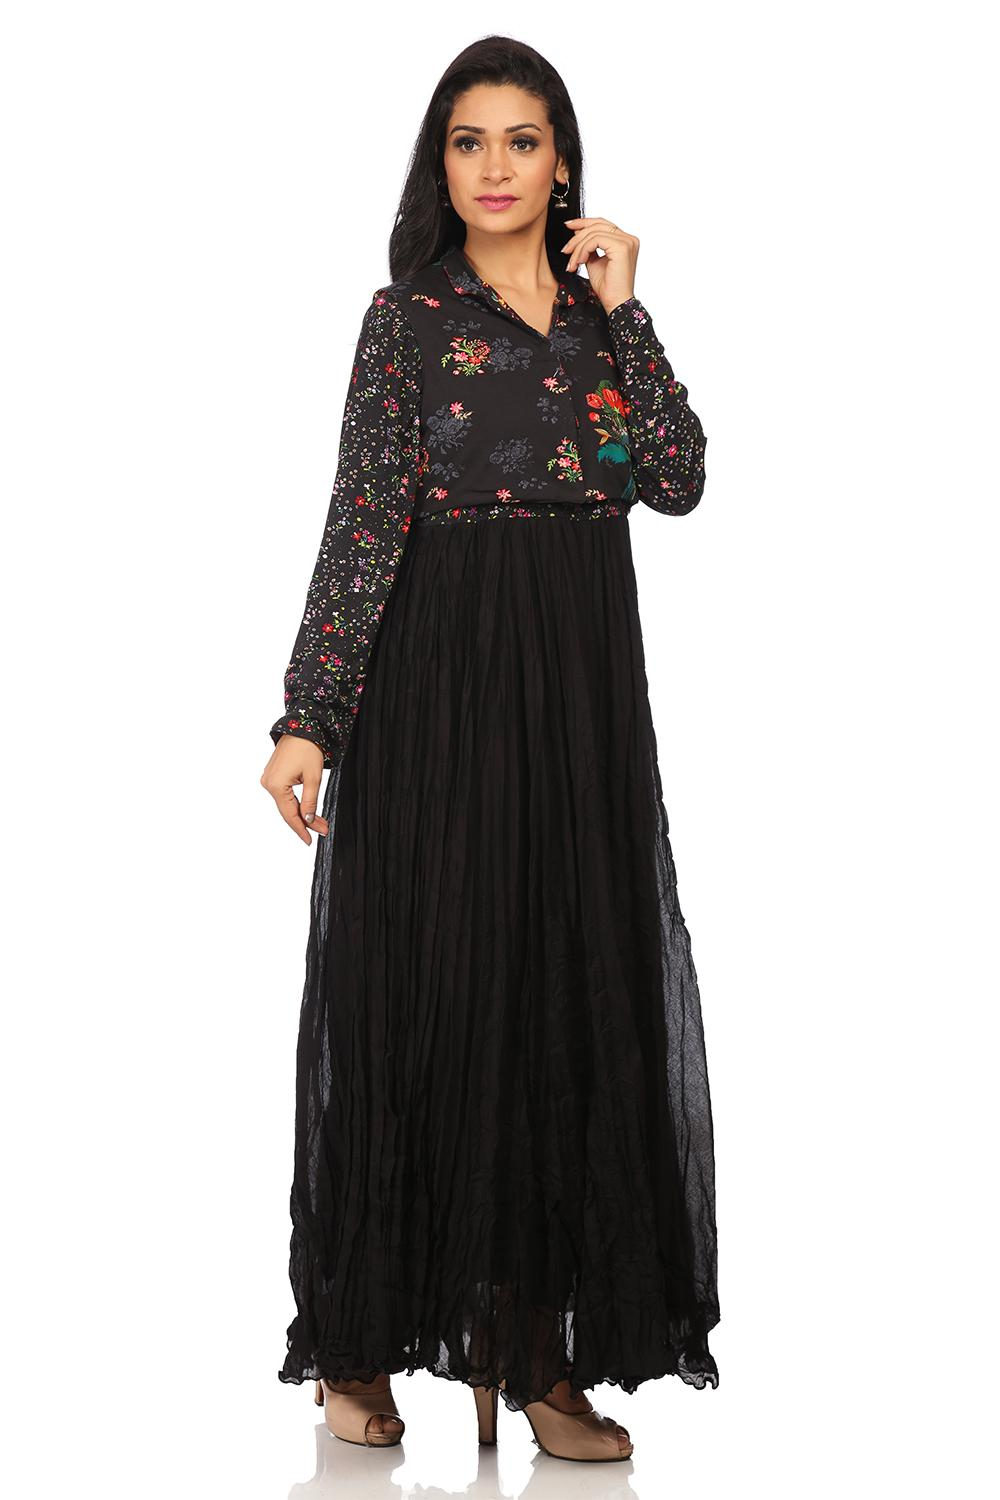 Black Anarkali Cotton Kurta - EDENGAR13258AW17BLK